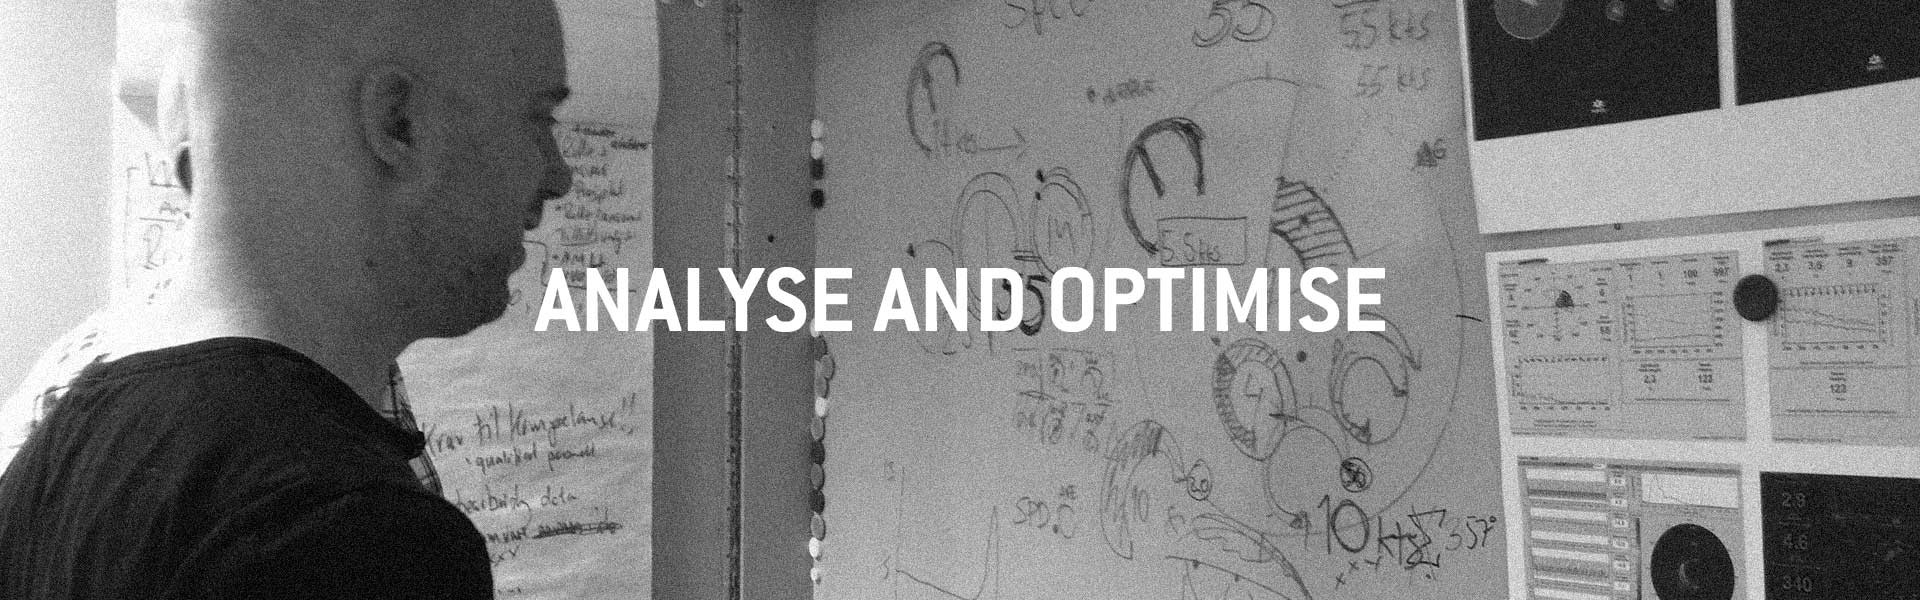 Analyse and Optimise